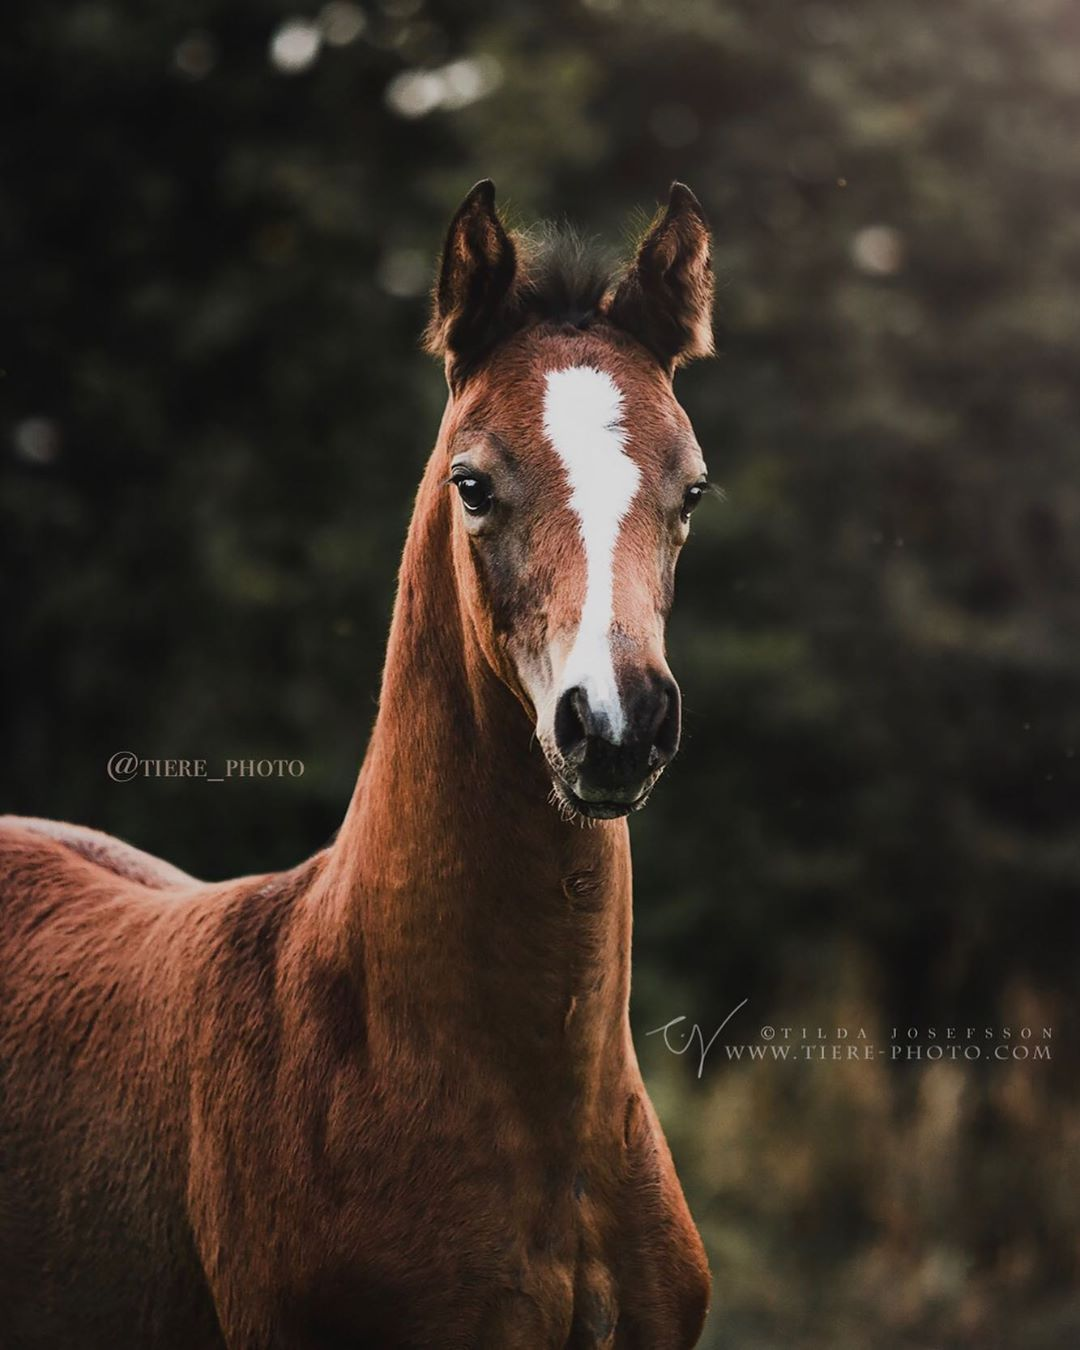 Foal From Mazurek Horse Team Photoshoot During Equine Photography Tour In Poland 2017 Hosted By Katarzyna Photo Equine With Images Horses Pretty Horses Foals